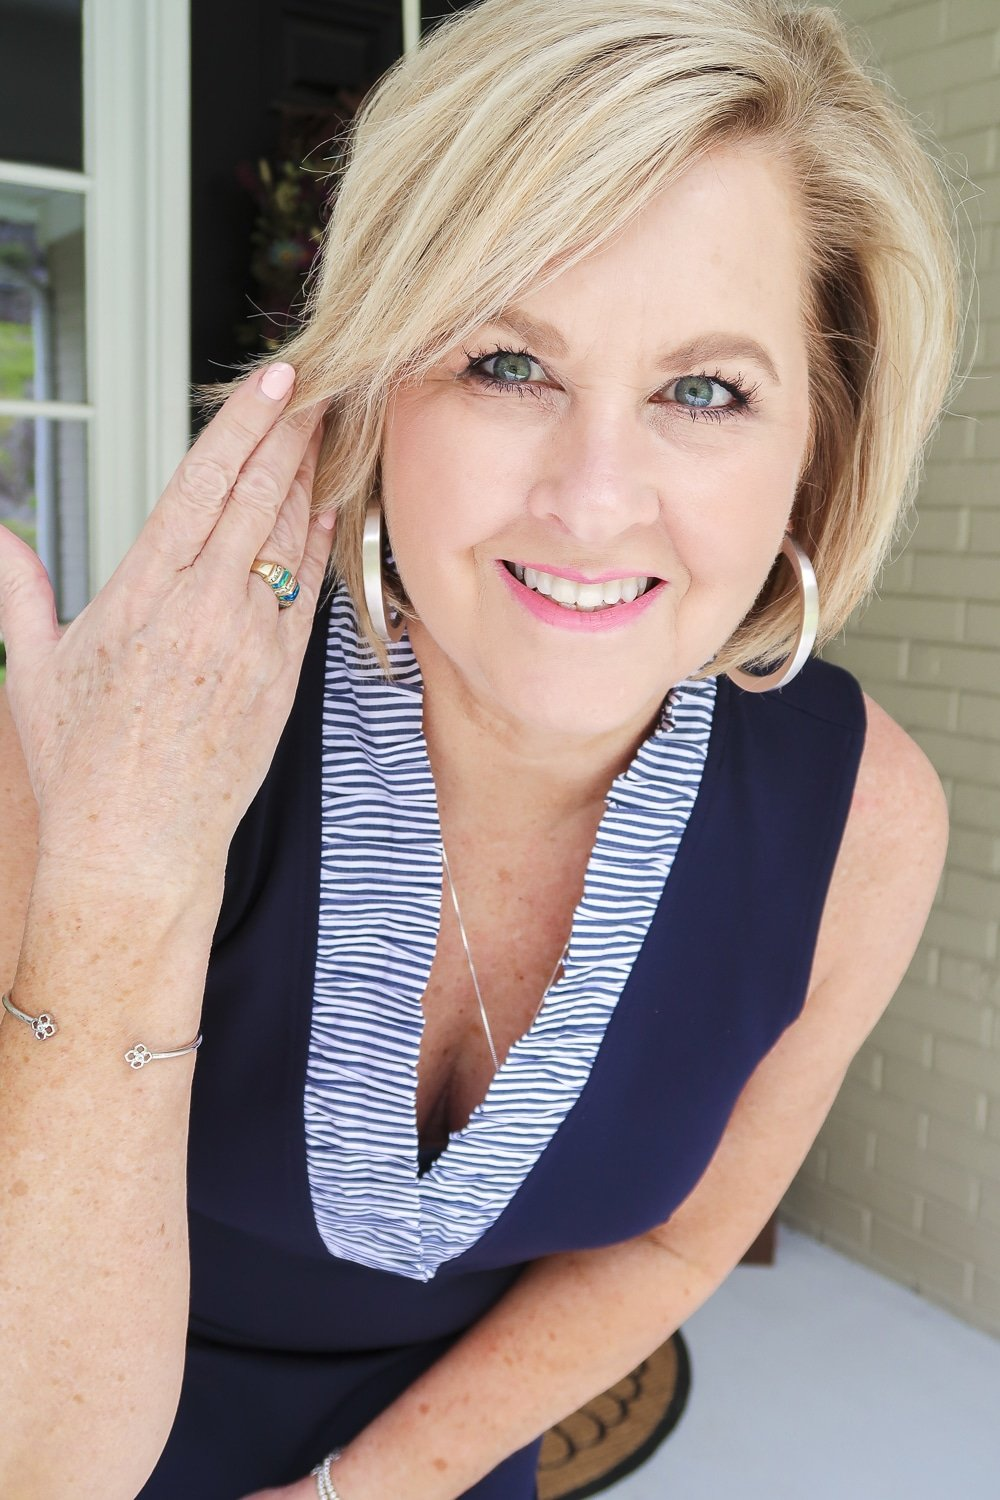 Fashion Blogger 50 Is Not Old is celebrating turning 60 with a navy sheath dress with a striped ruffled neckline and silver jewelry from Kendra Scott